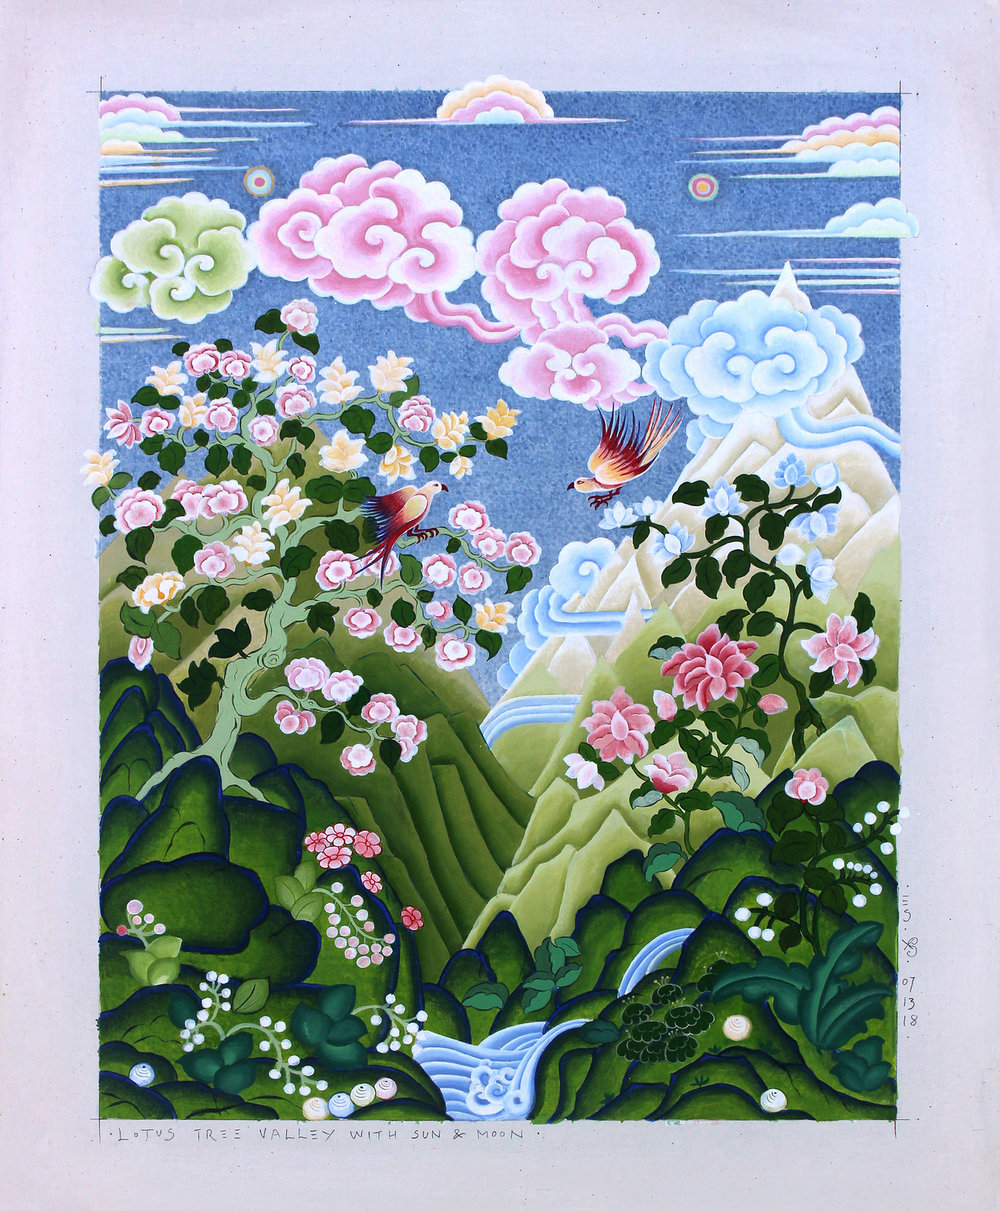 Eva Schicker , Lotus Tree Valley With Sun & Moon, 2018.  Acrylic, pencil, glue, on framed cotton canvas  As a painter, I have a profound interest in the Asian tradition of Thangka painting. This technique has enabled me to refine my style to narrative painting. My depictions of nature scenes represent the philosophy of harmony, beauty and tranquility. Through my painting, I express a poetic place of comfort. Rocks, clouds, water, trees, flowers and animals are featured prominently in Thangka painting. Each element expresses a property that follows us through life. Rocks symbolize the steadfastness, clouds depict the air and the spirit of life, water symbolizes life's abundance, and nature shows us the interdependence of all beings.